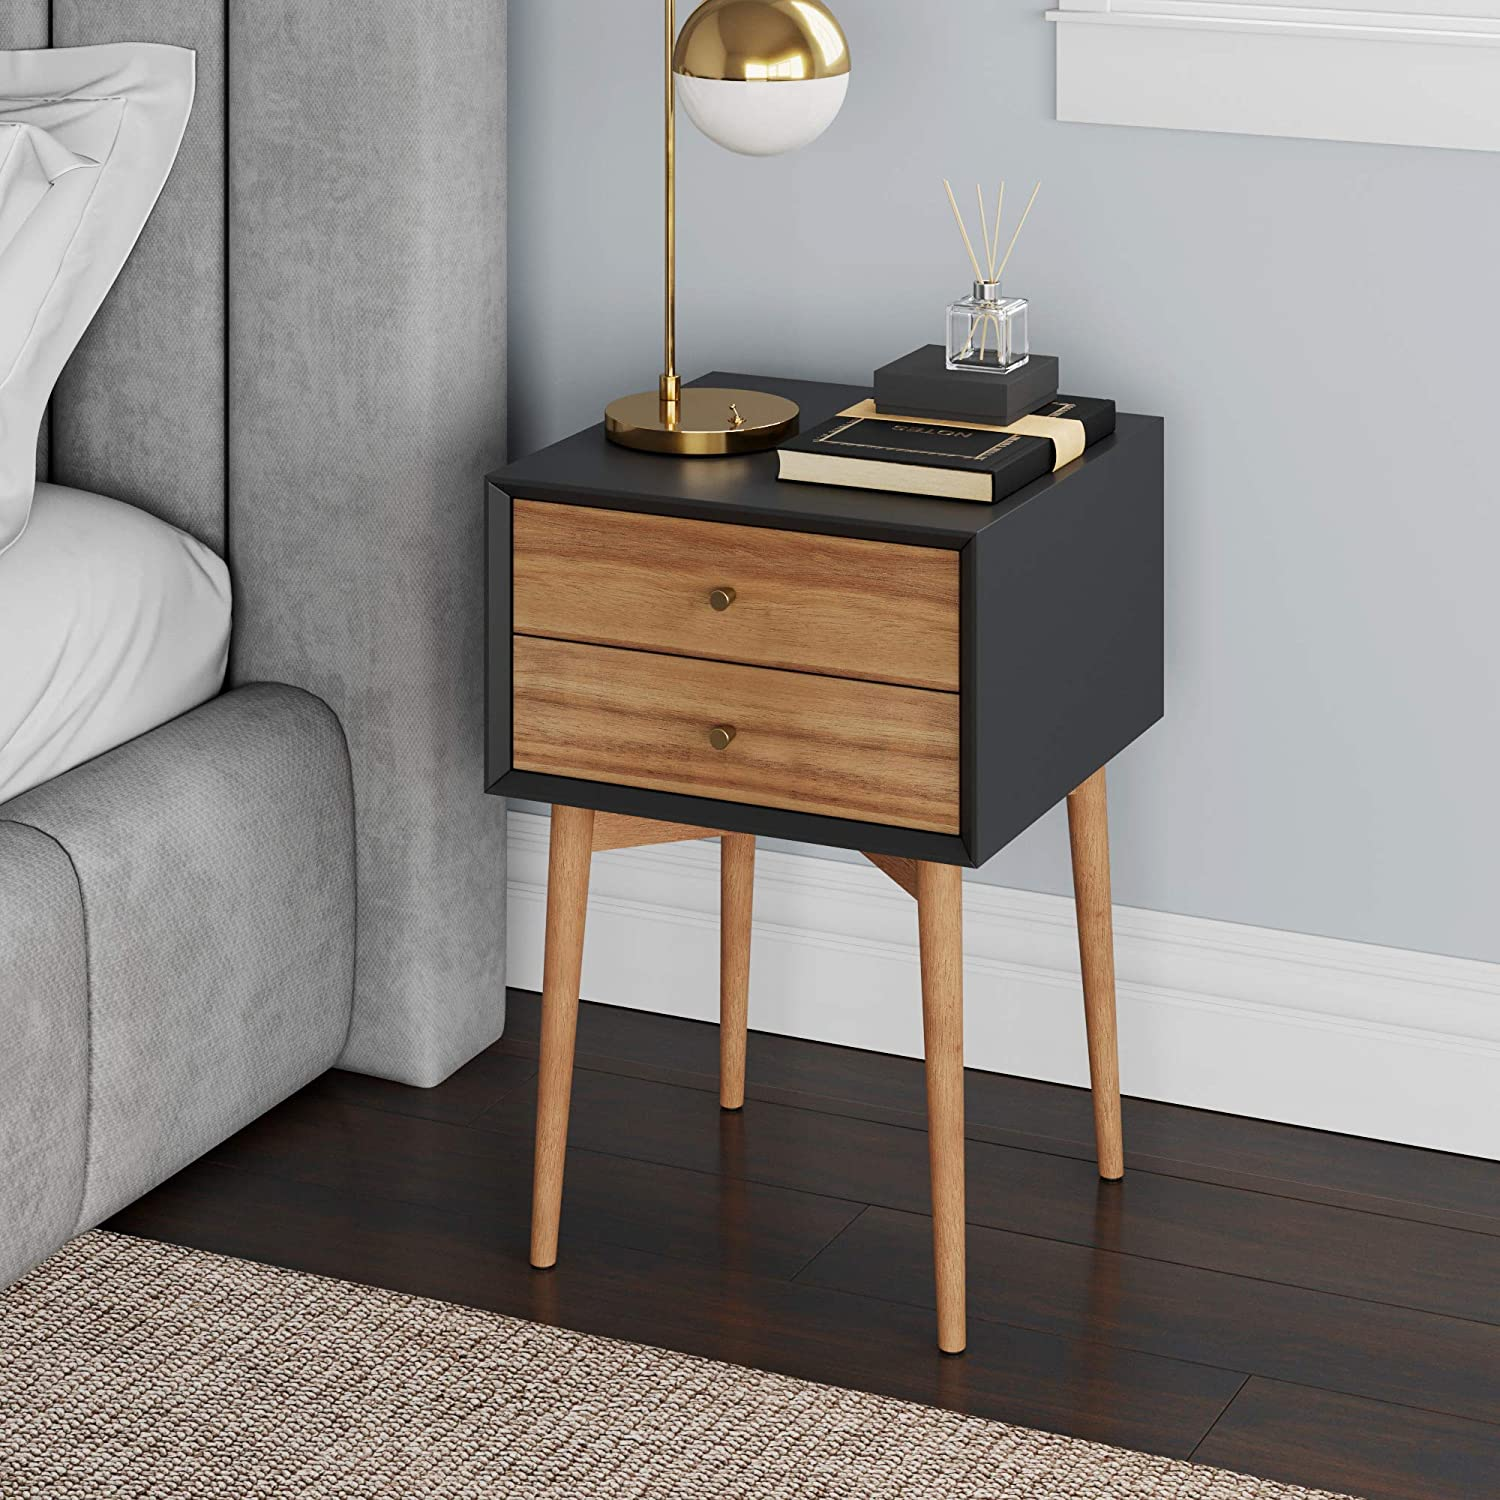 Wooden retro nightstand with long tapered legs and a natural finish except for the black top and sides.